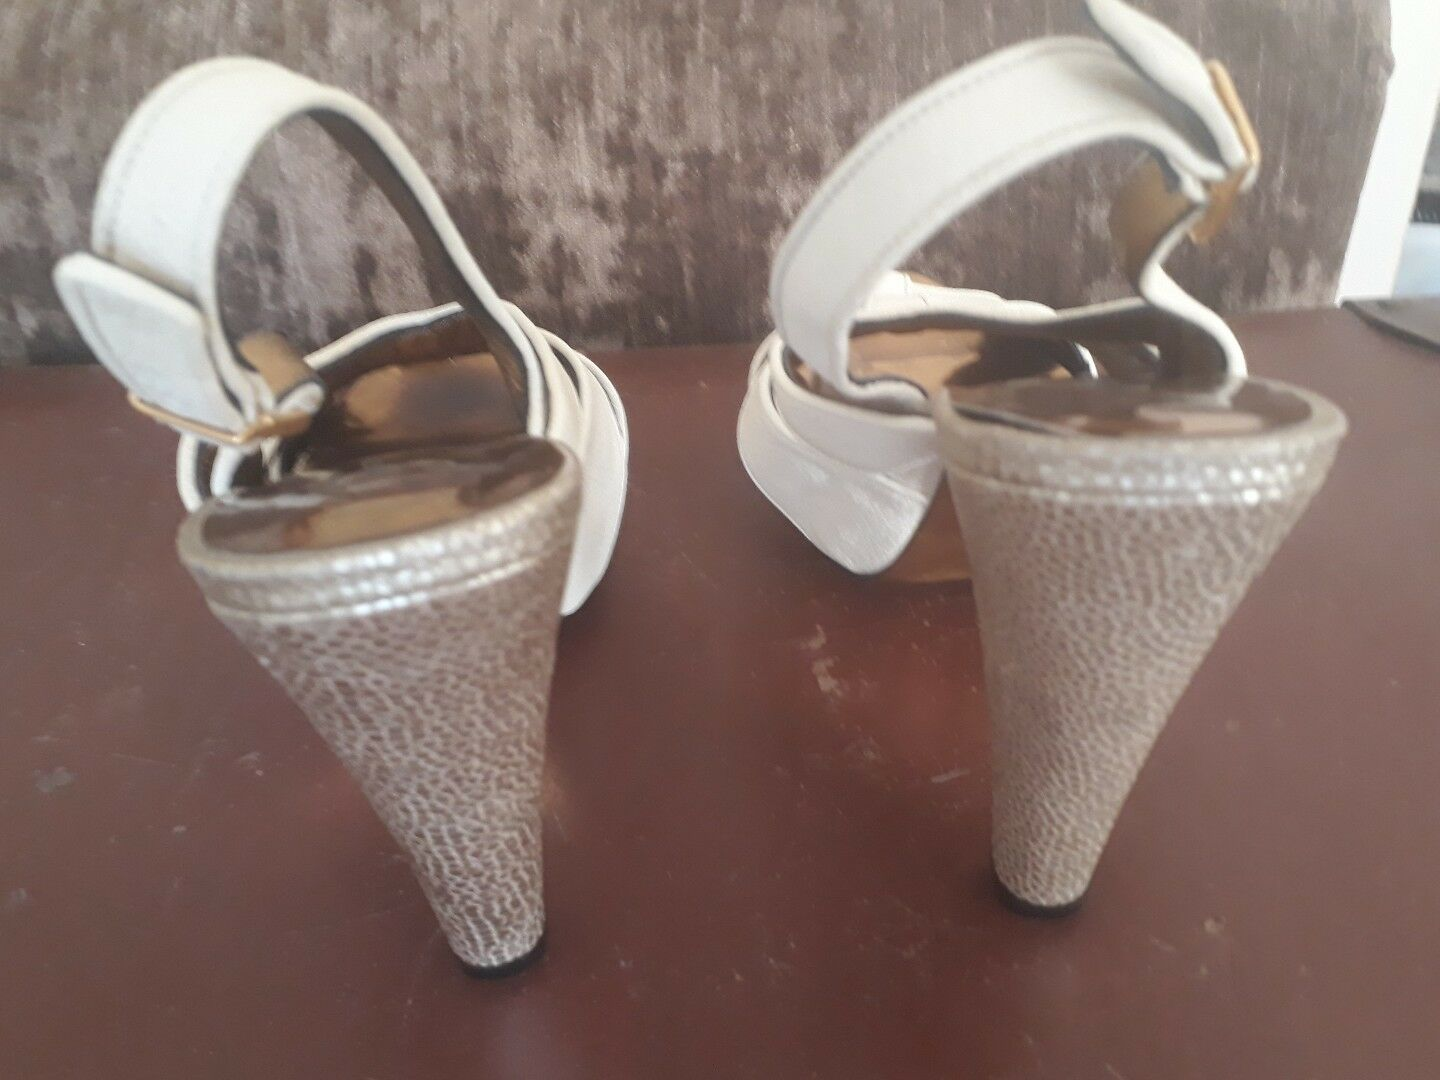 BARBARA BUI Sandales Damenschuhe 7 UK(40 EURO) Cream etc Leder with Gold Heels,Soles etc Cream 0eb4ec